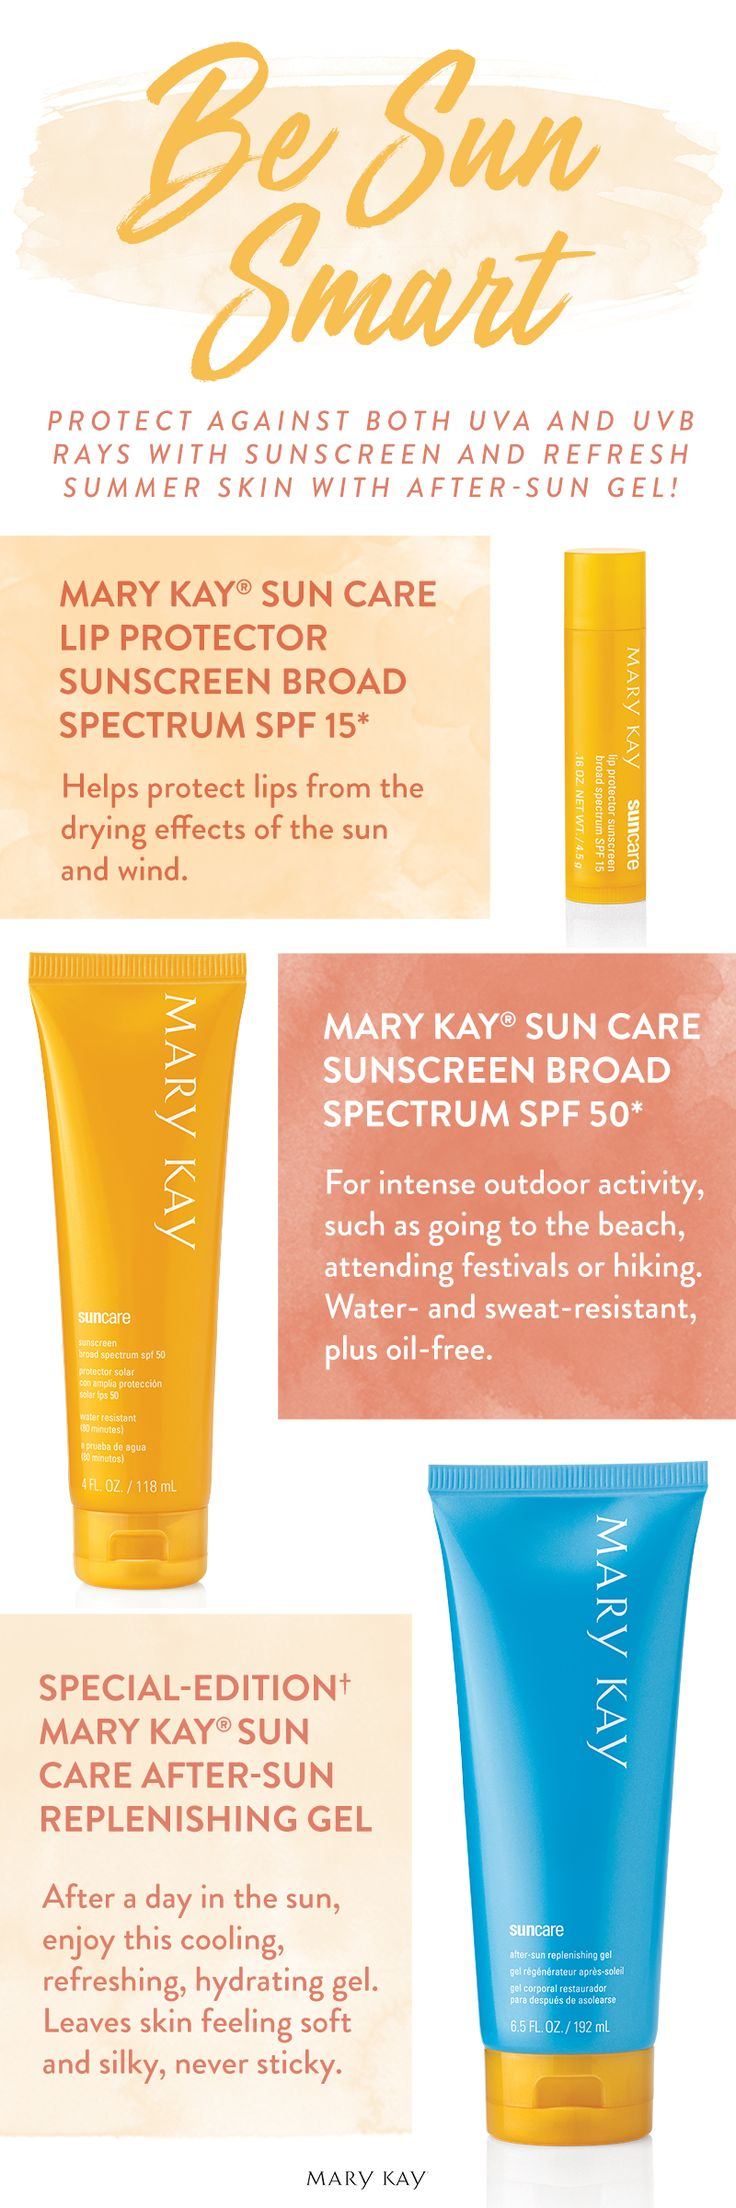 Smart Beauties Know How To Protect Against Both Uva And Uvb Rays With  Sunscreen, And